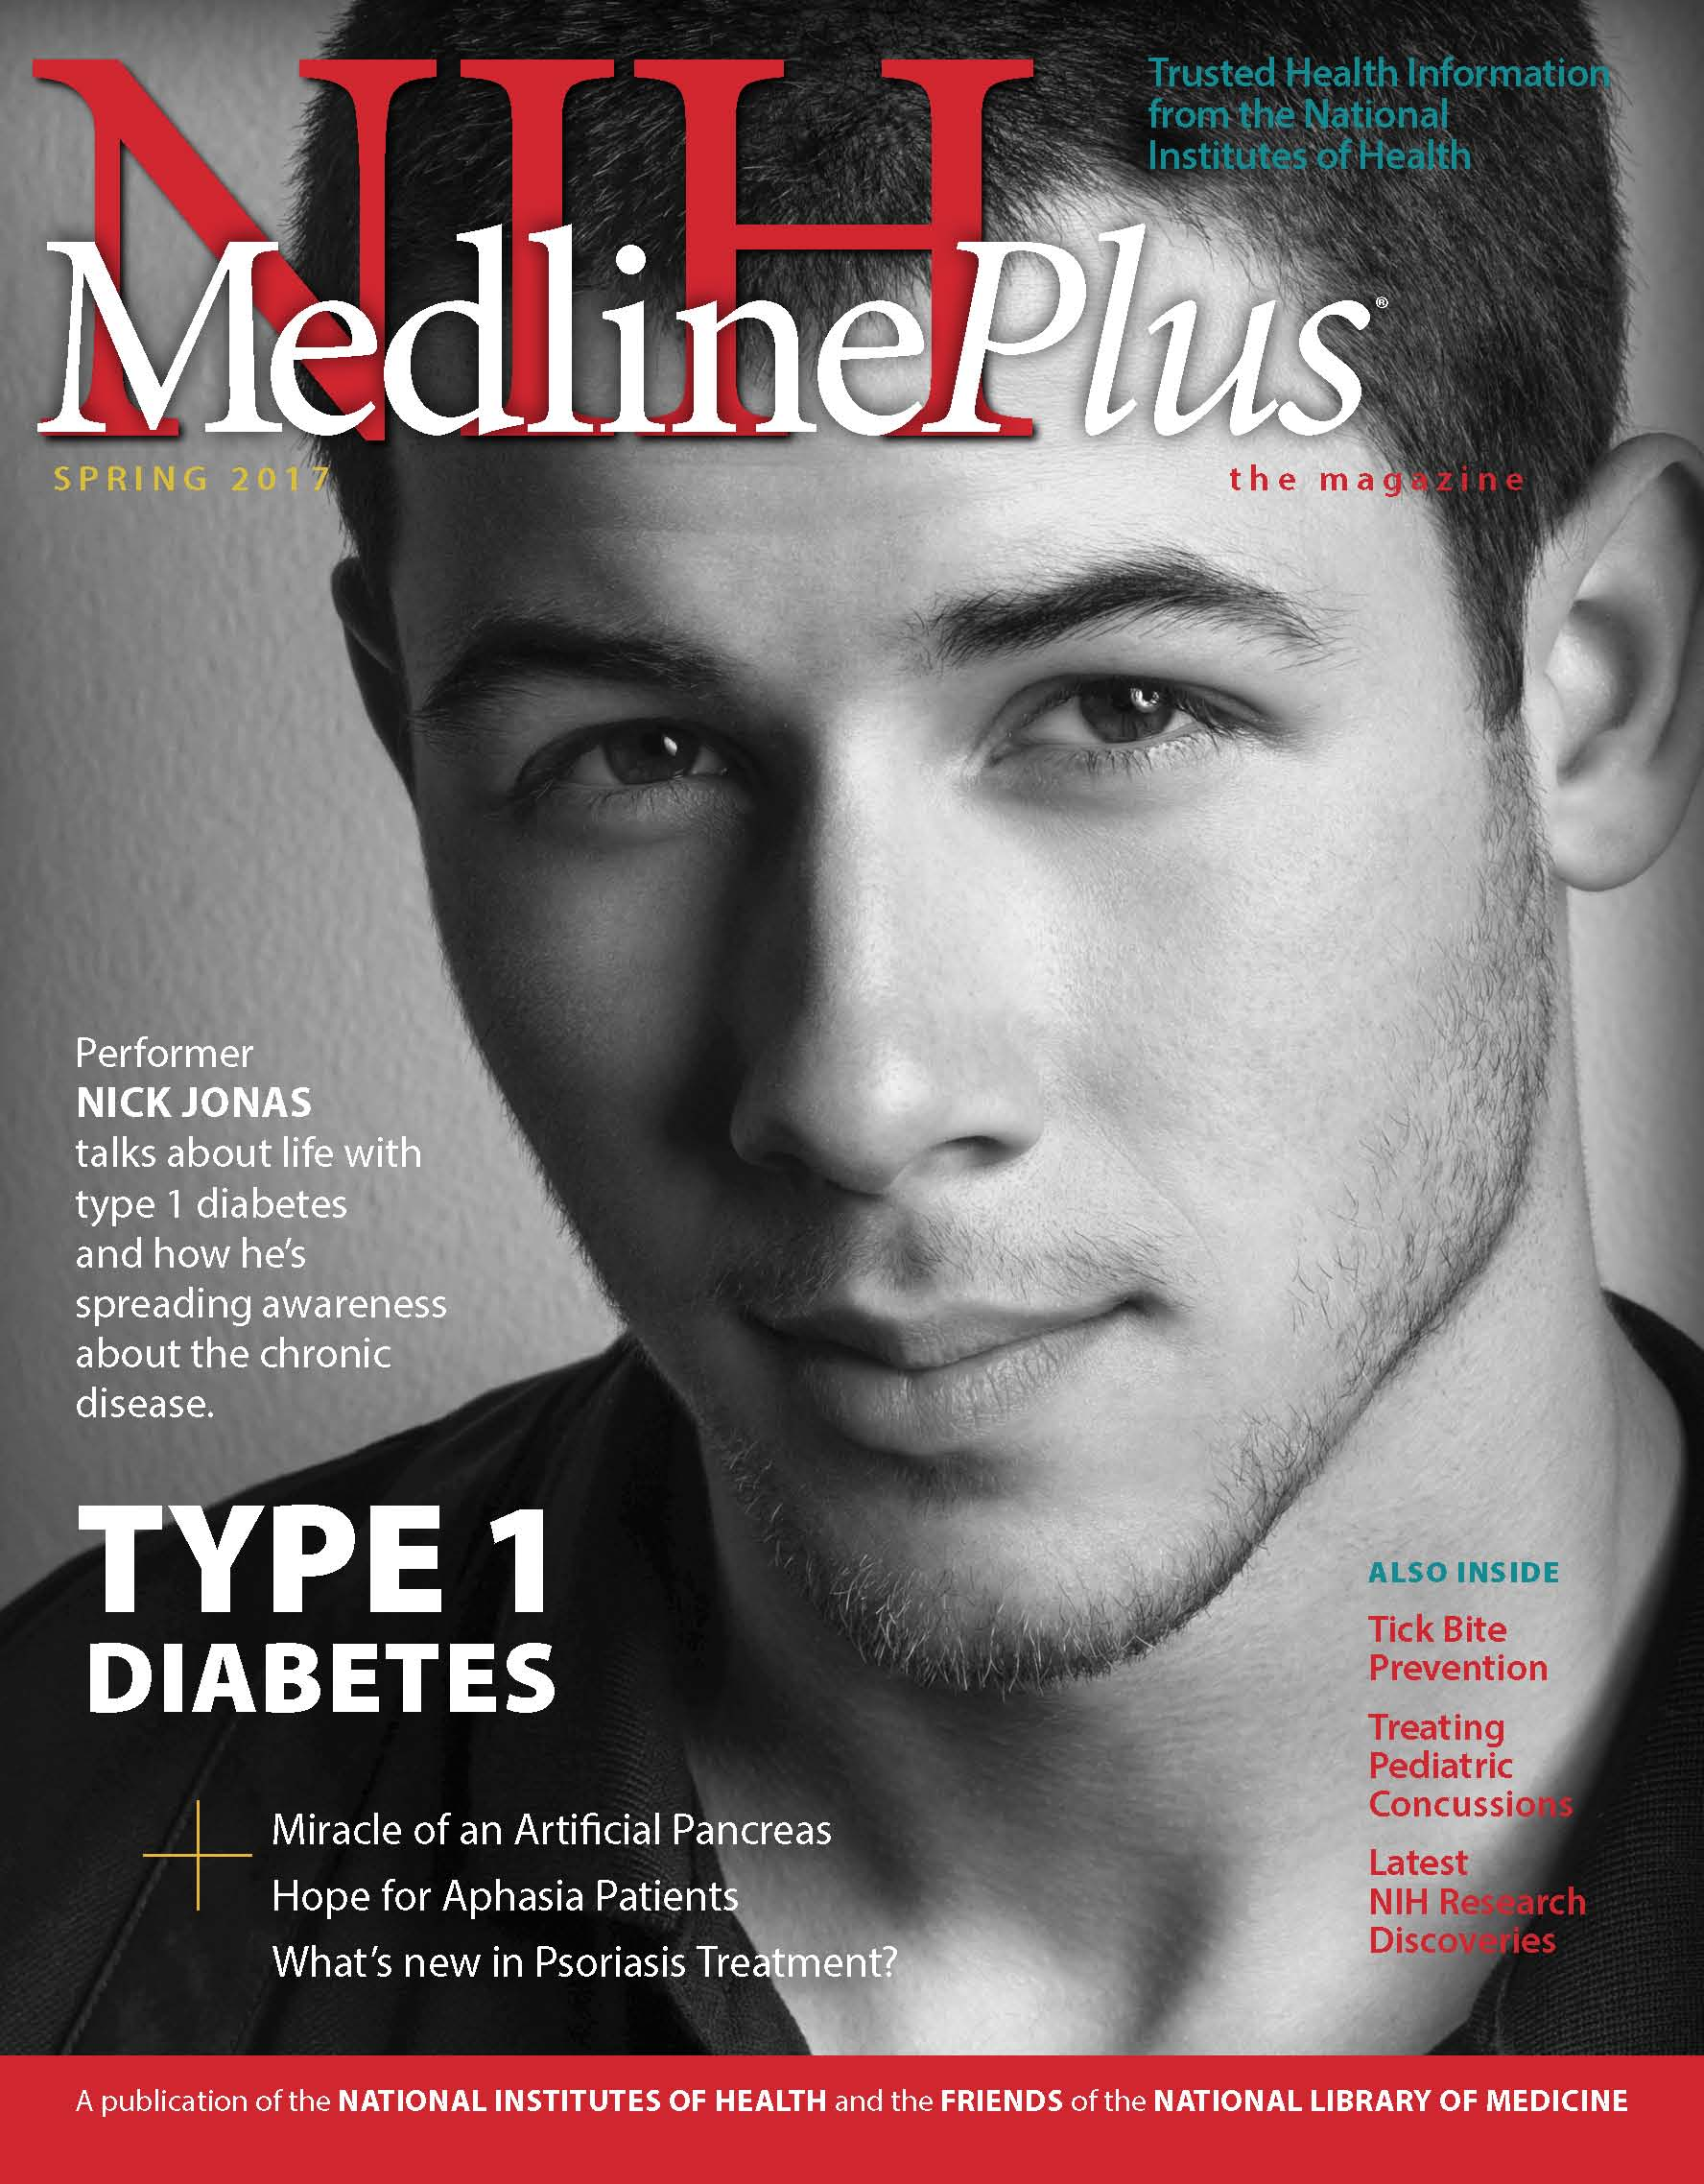 Cover of NIH MedlinePlus the Magazine Spring 2017 Issue